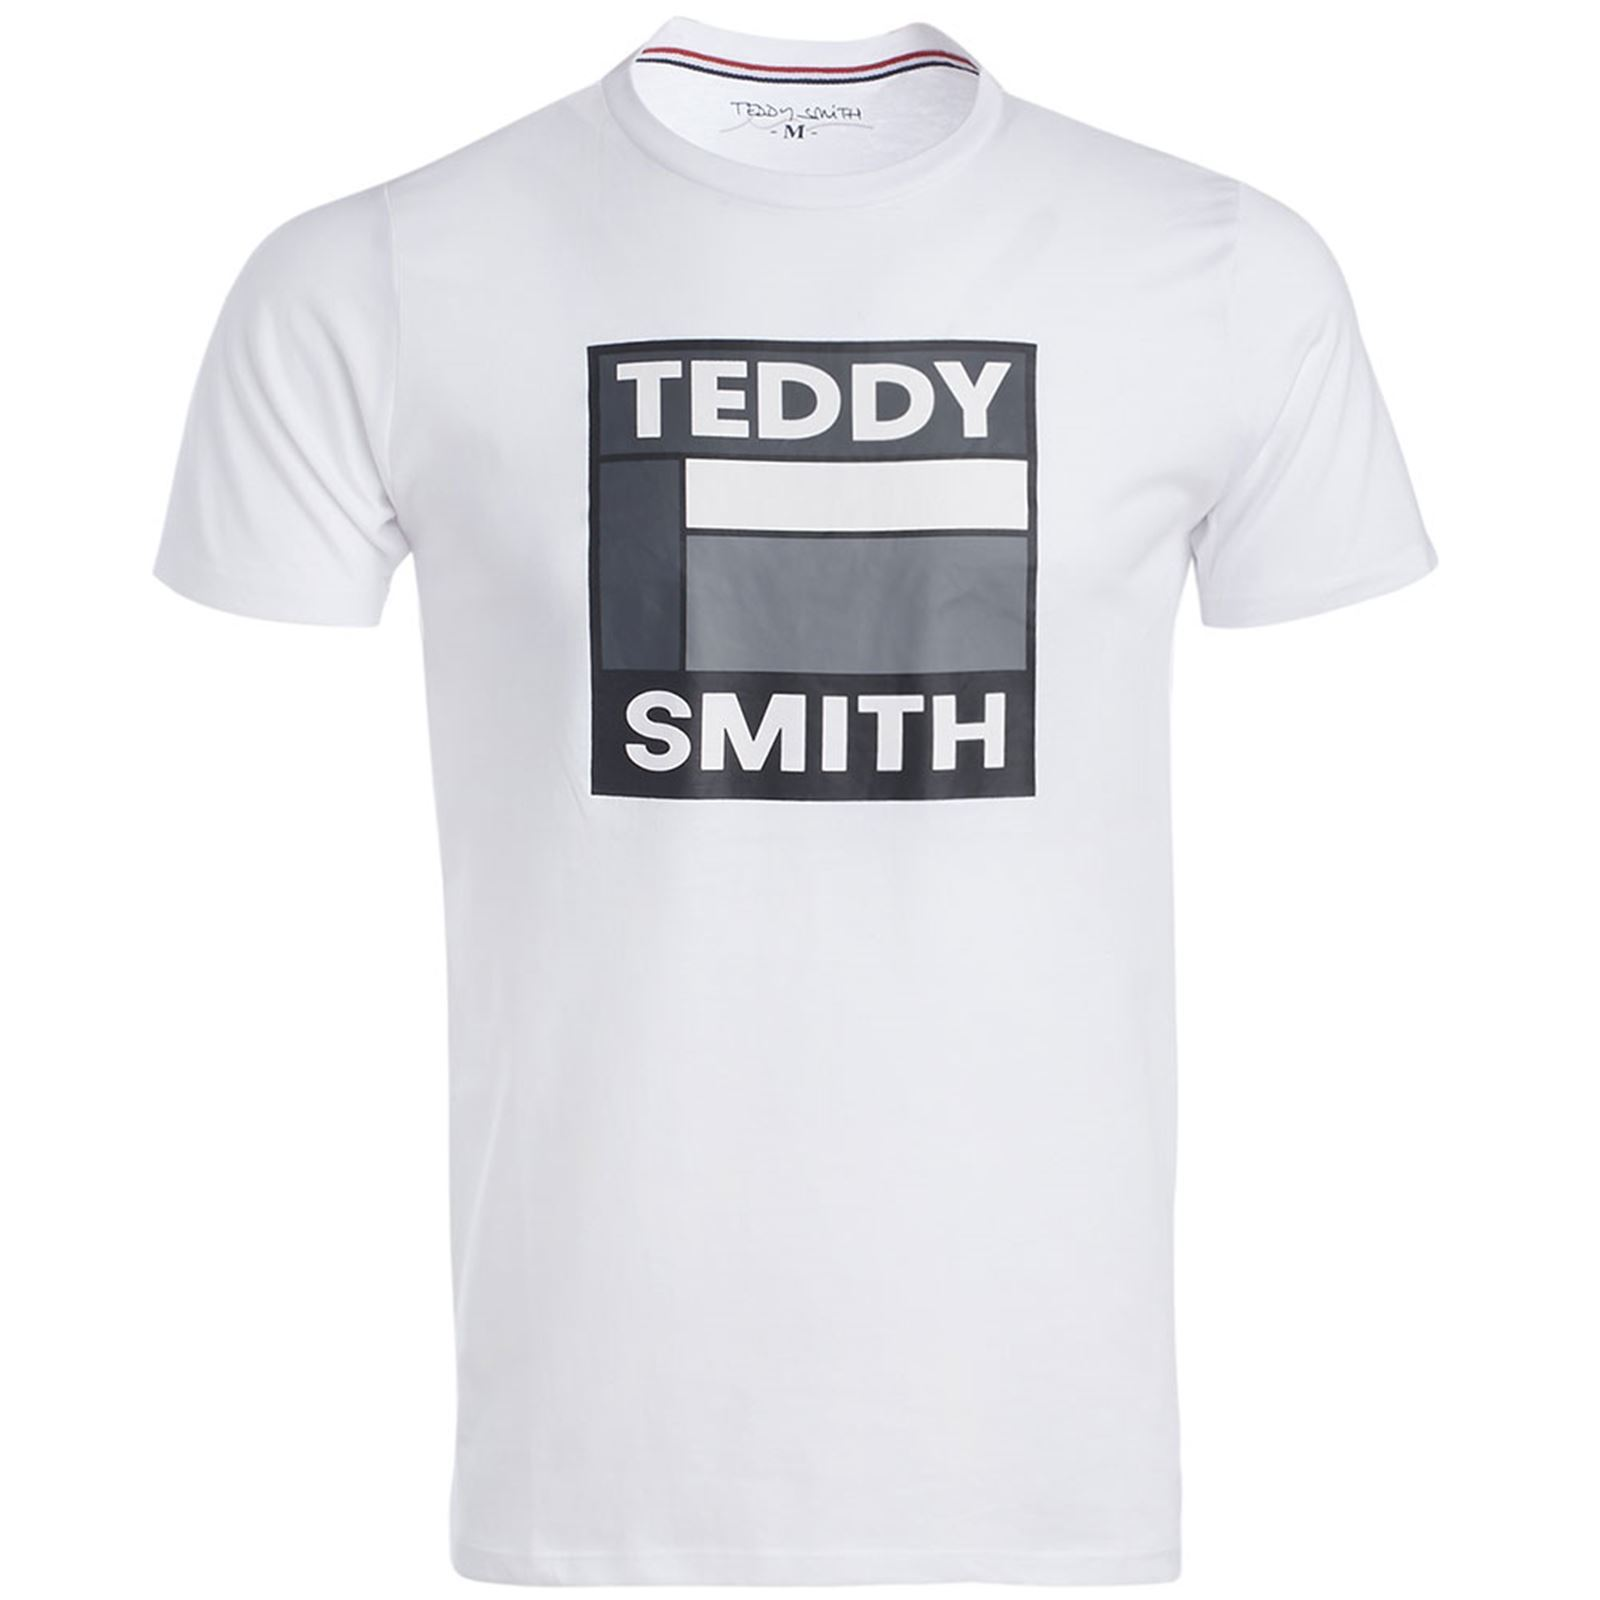 CourtesBlanc T V shirt Teddy Smith Manches Homme xodCerWB